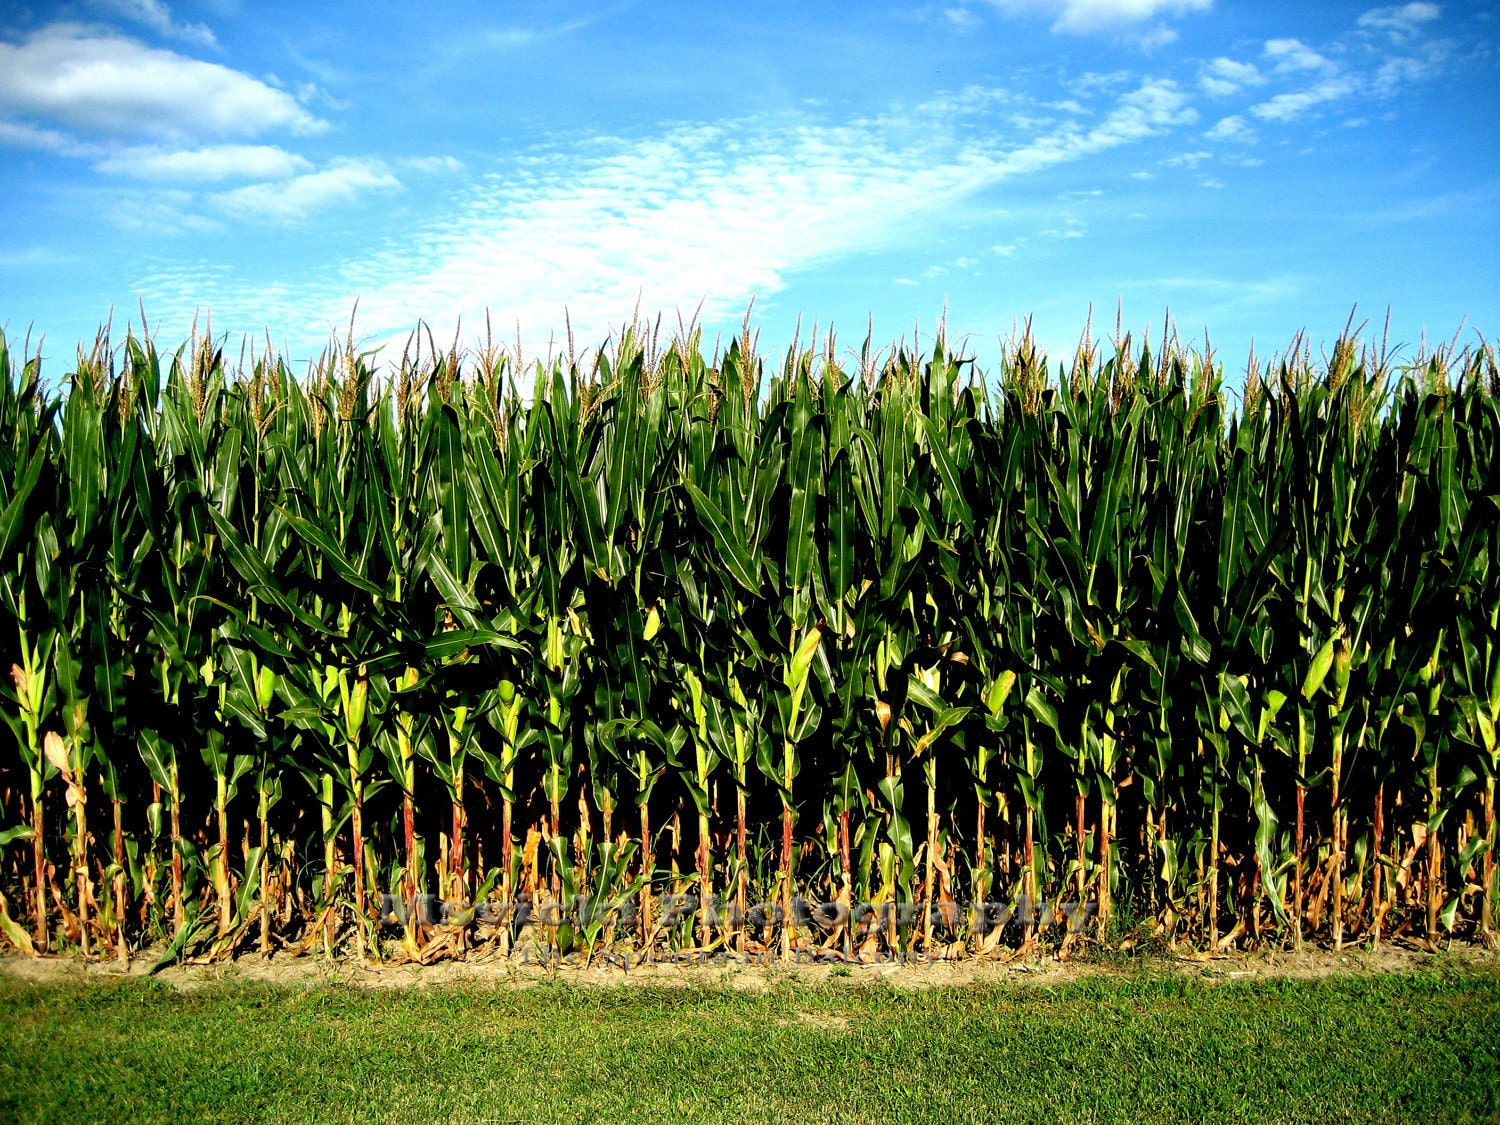 Popcorn or Field Corn...What's the Difference? - The ...